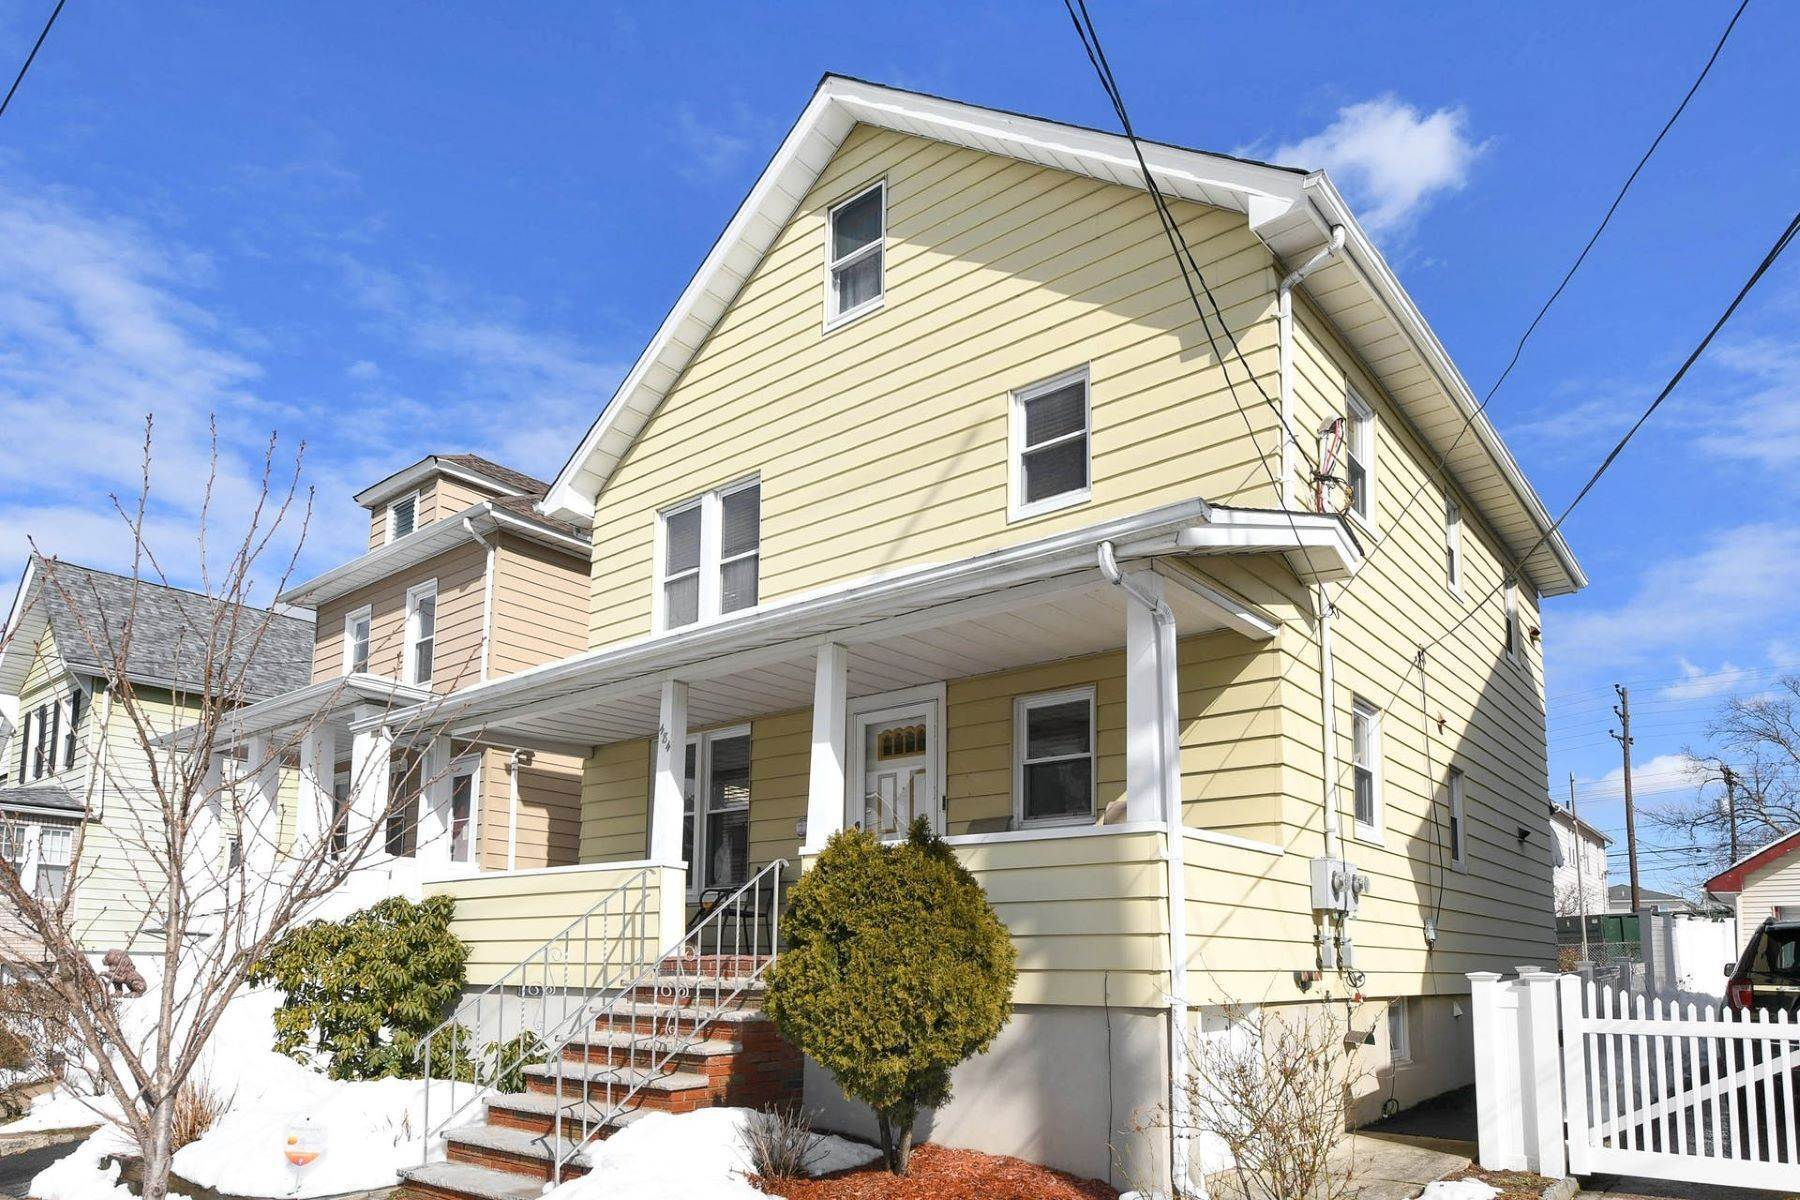 Multi-Family Homes para Venda às Two Family Home 484 Washington Ave Hackensack, Nova Jersey 07601 Estados Unidos